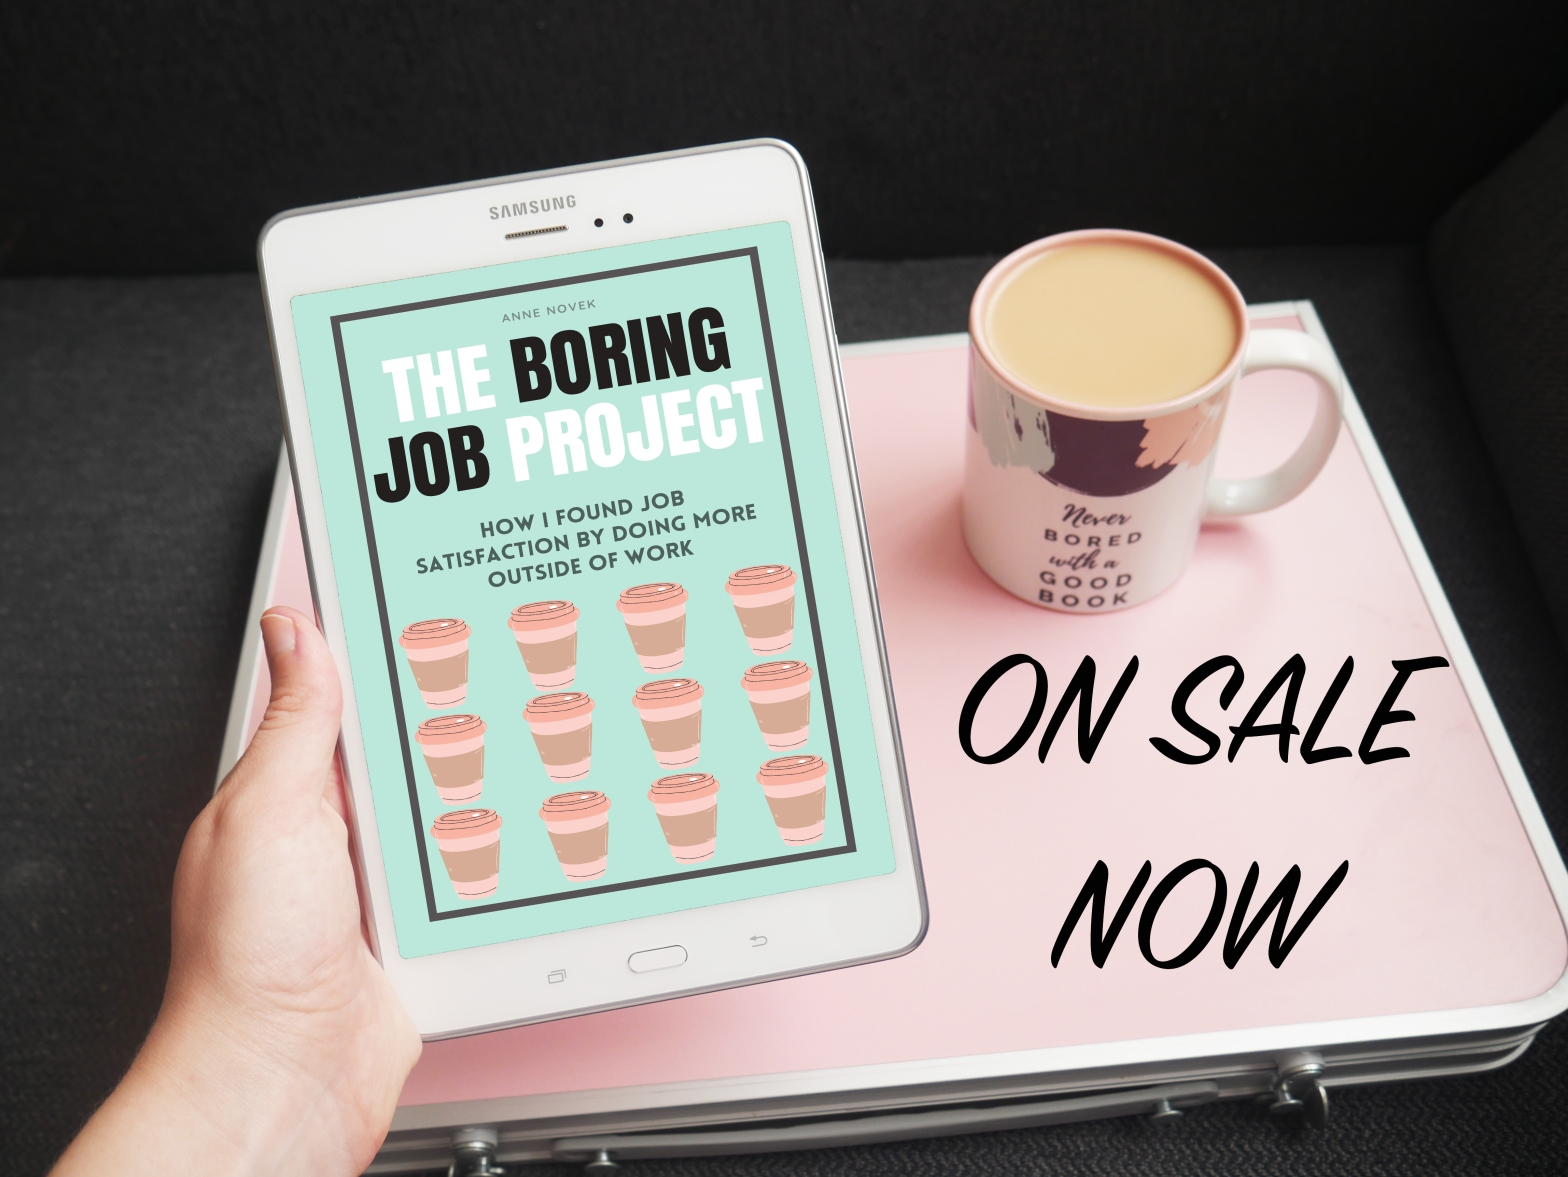 the boring job project is one sale now